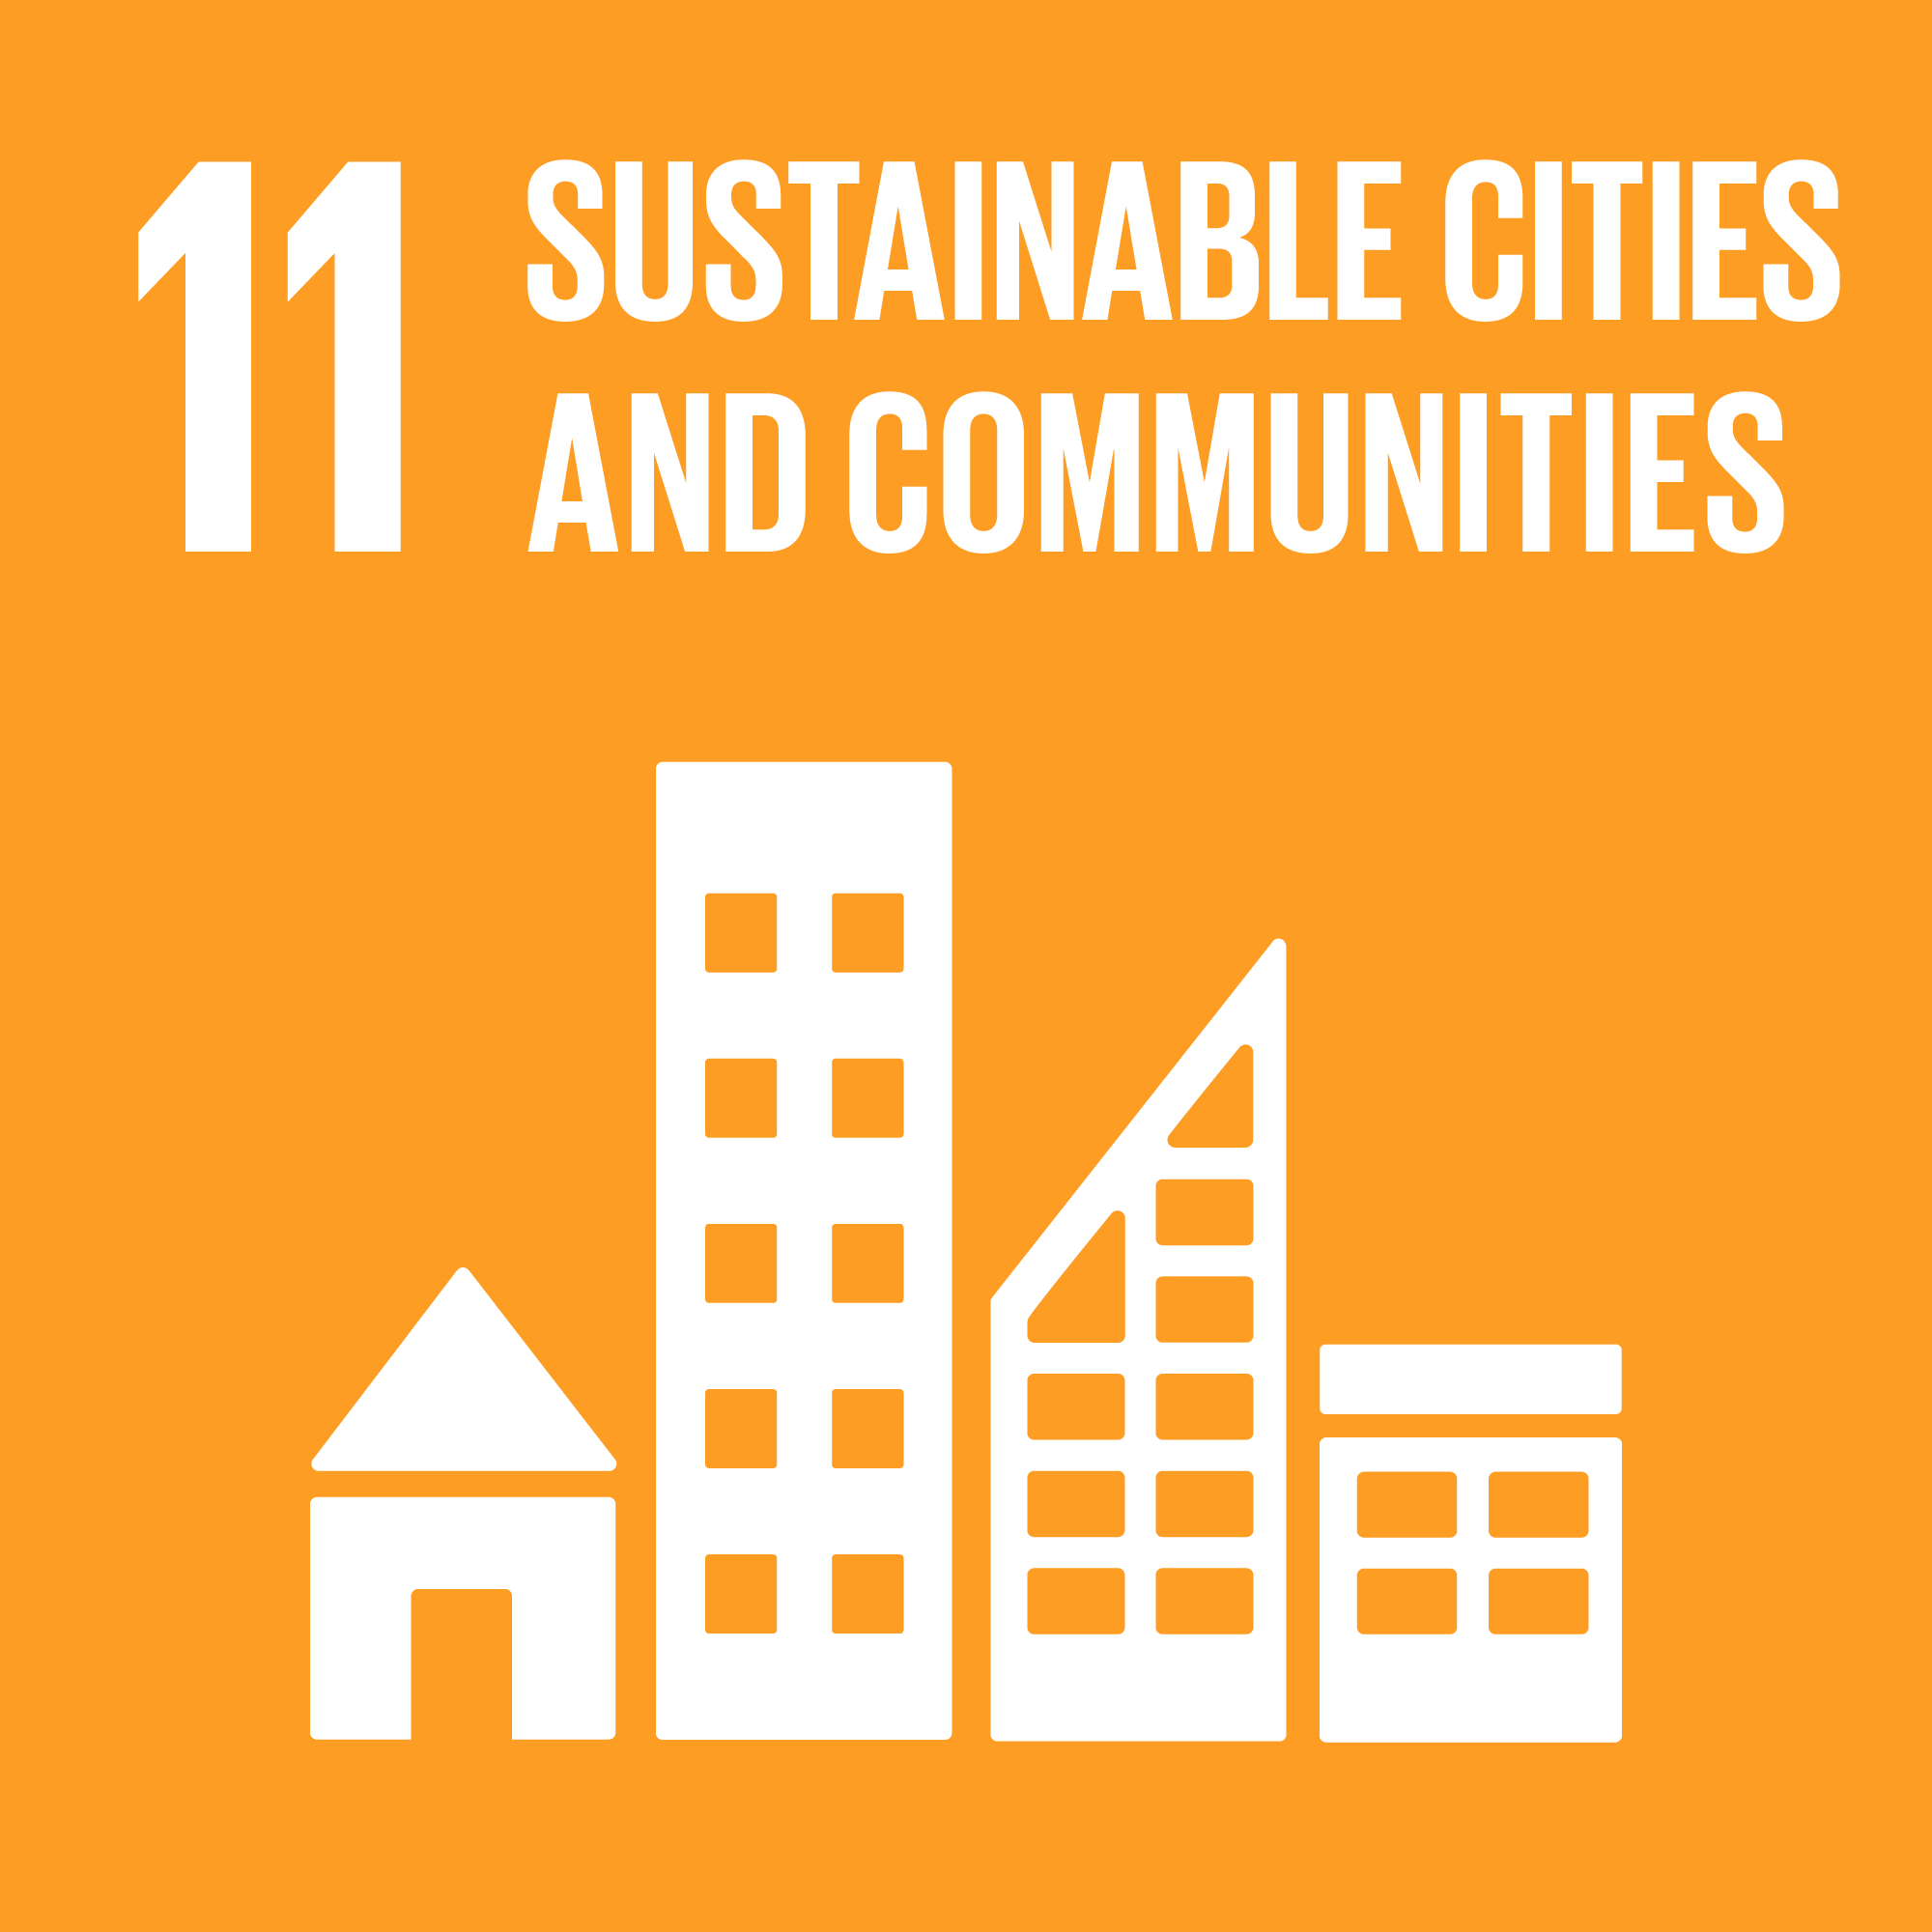 Agenda 2030 goal number 11: sustainable cities and communities